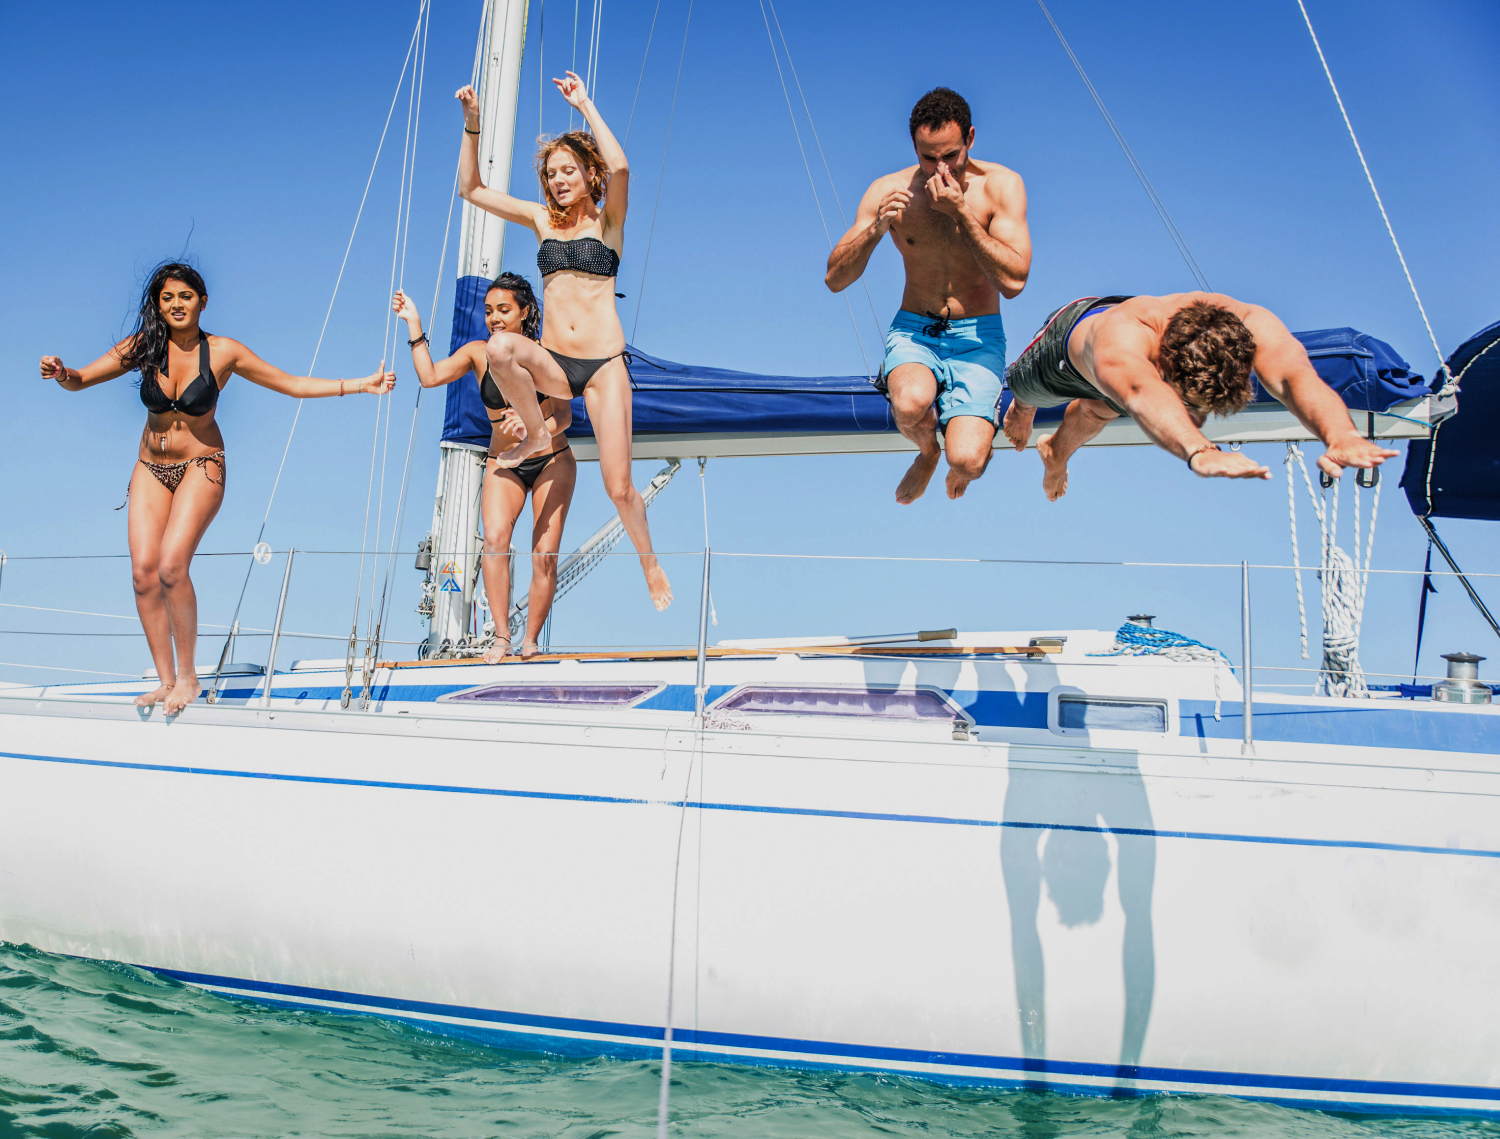 friends on a boat jumping into the sea